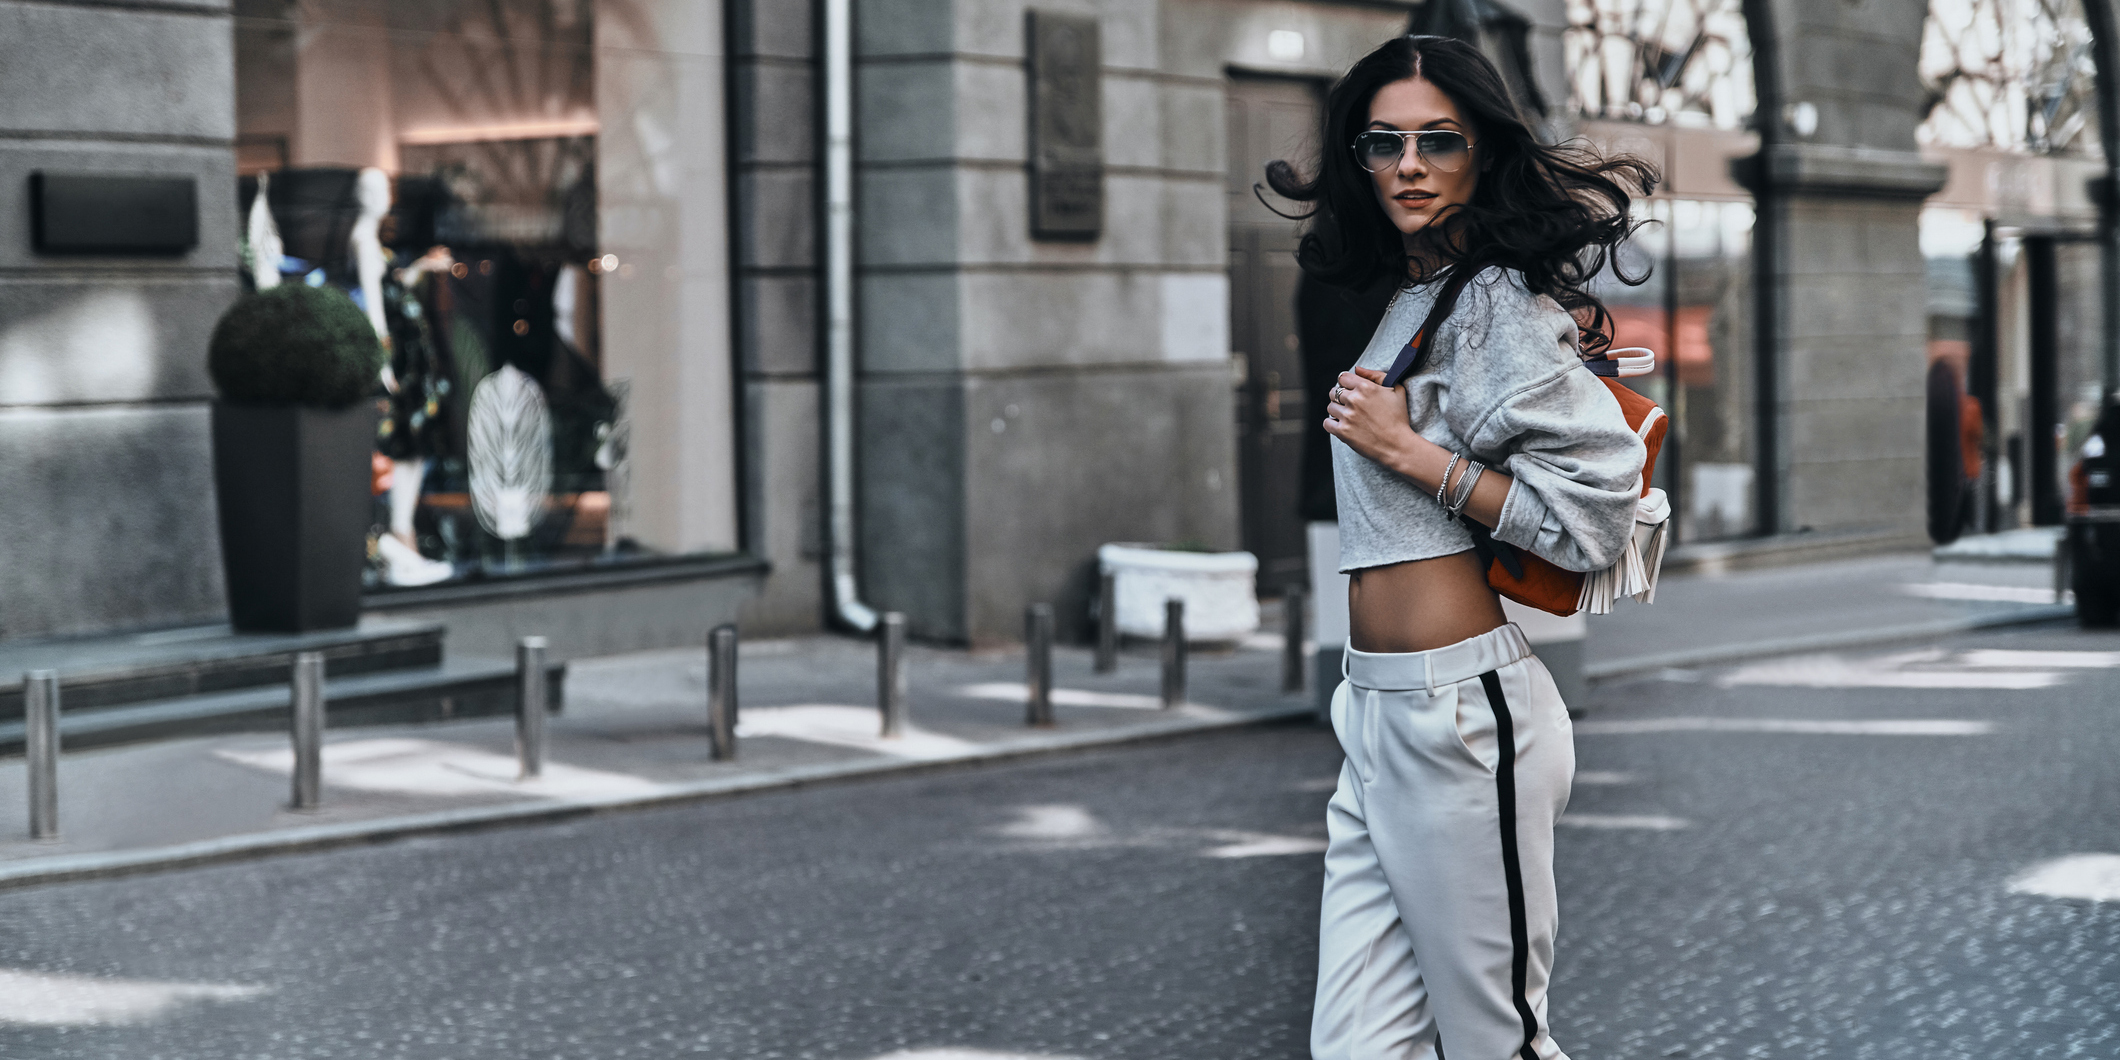 How a Focus on Work Can Grow Athleisure